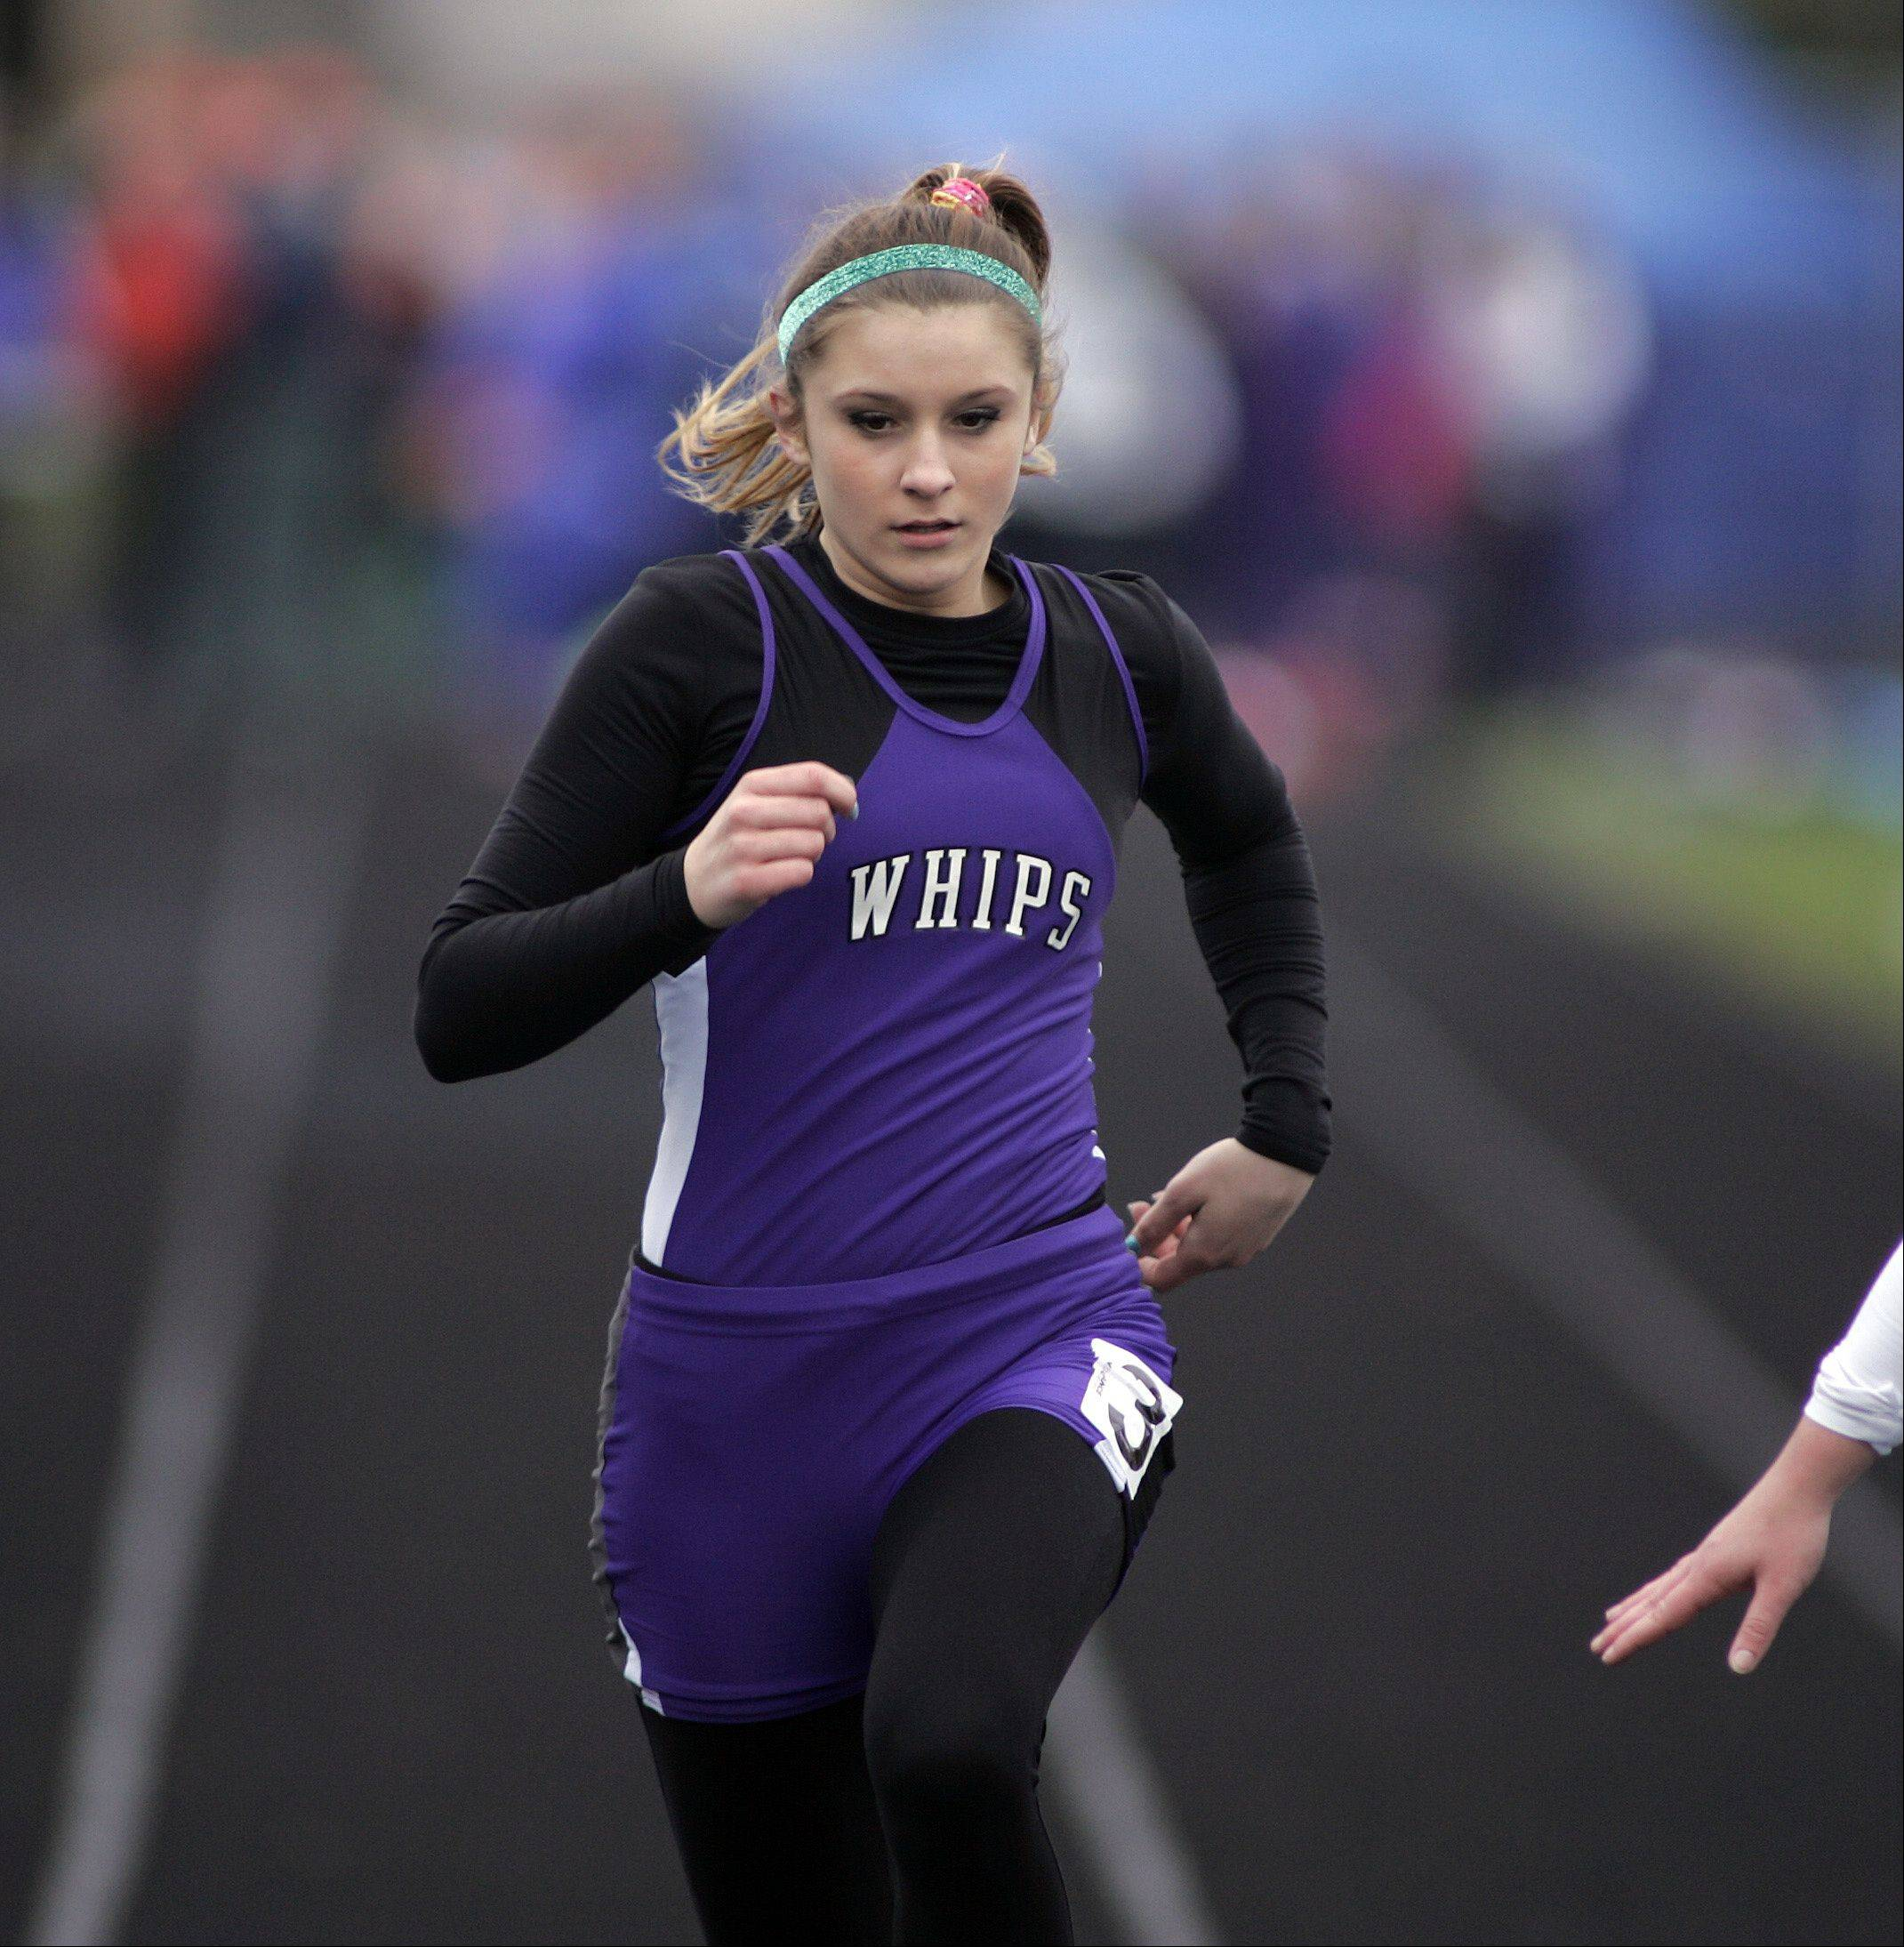 Hampshire's Anita Trzebunie competes in the 100 meter dash during the Burlington Central girls track sectional Friday.